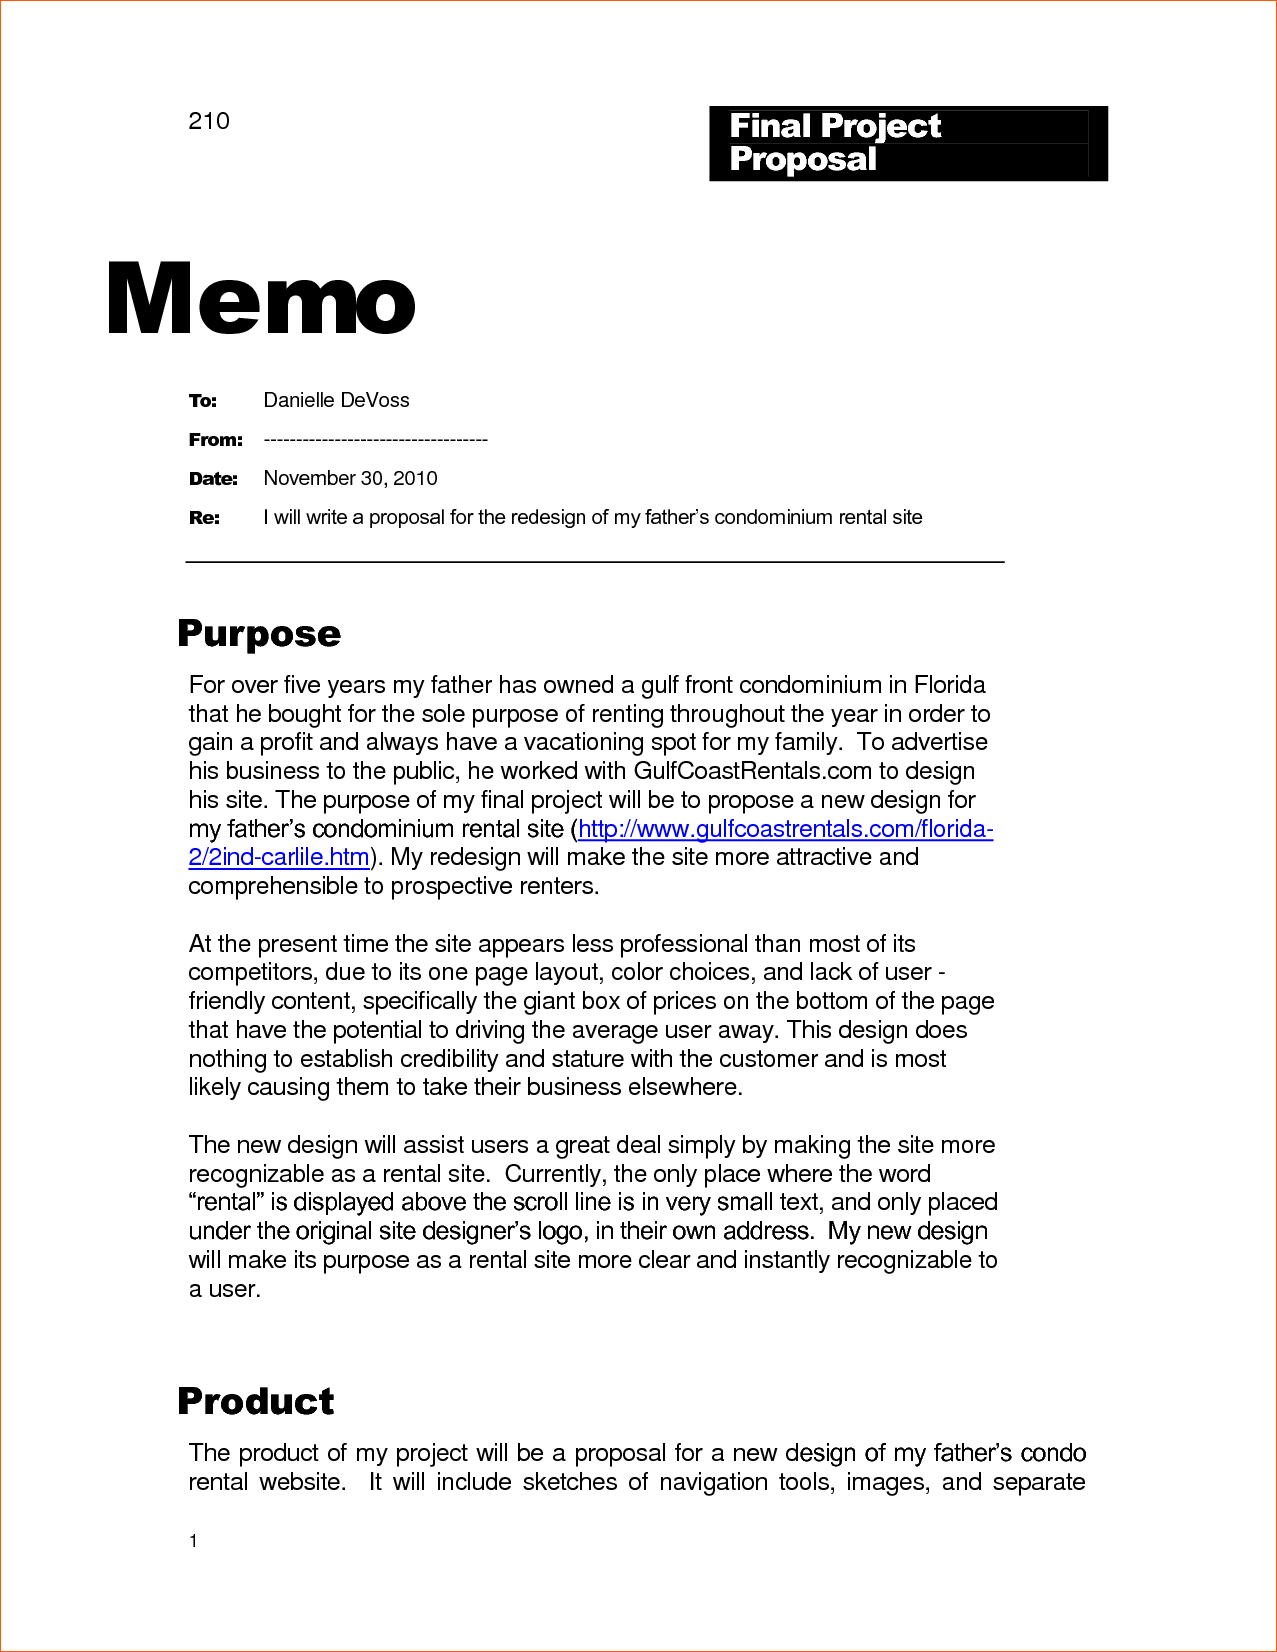 business memo sample formats close with any follow items required